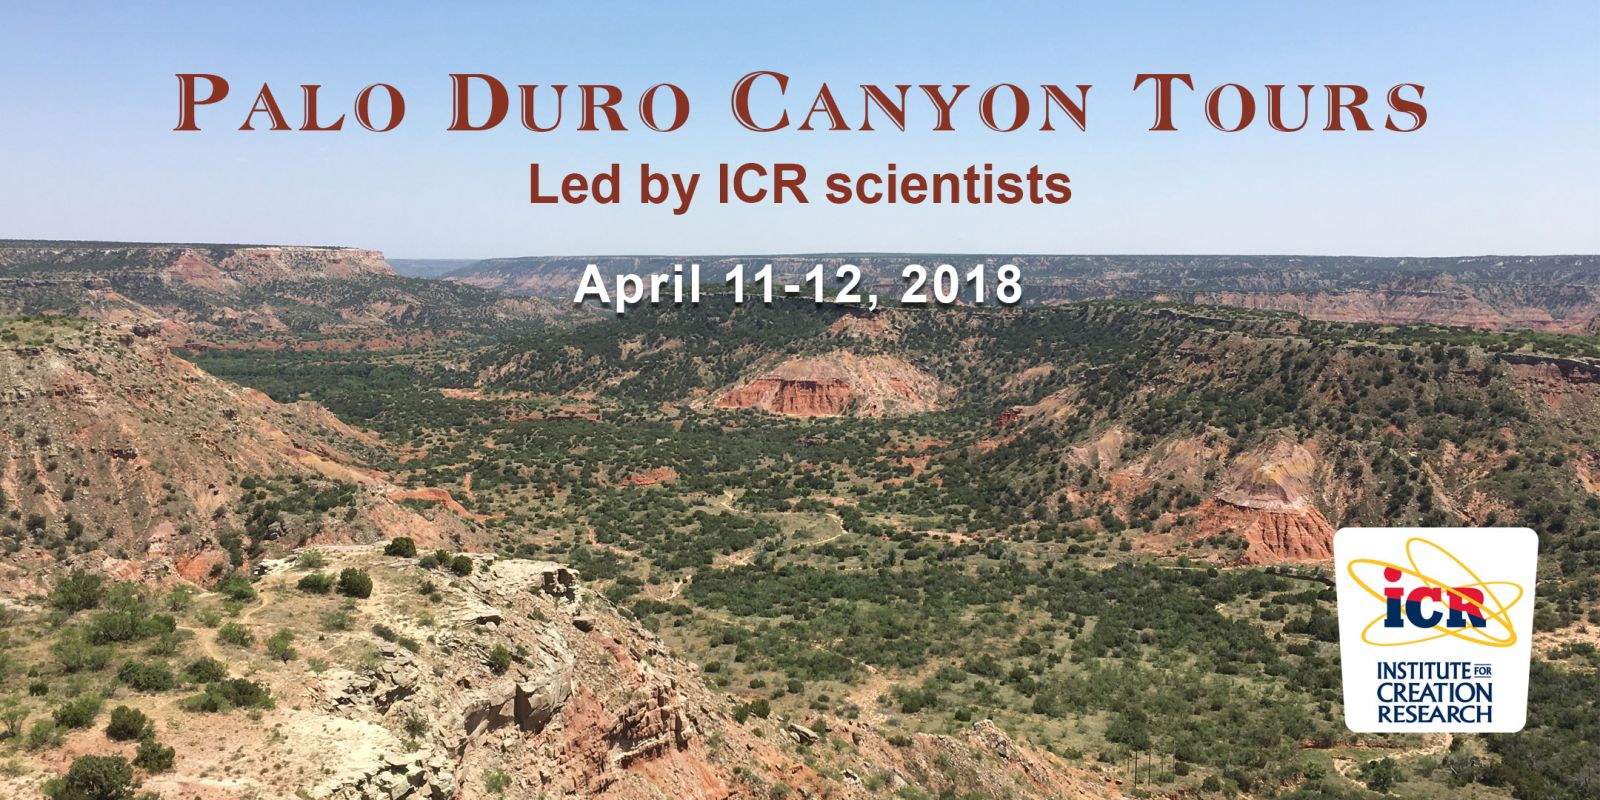 Palo Duro Canyon Tours